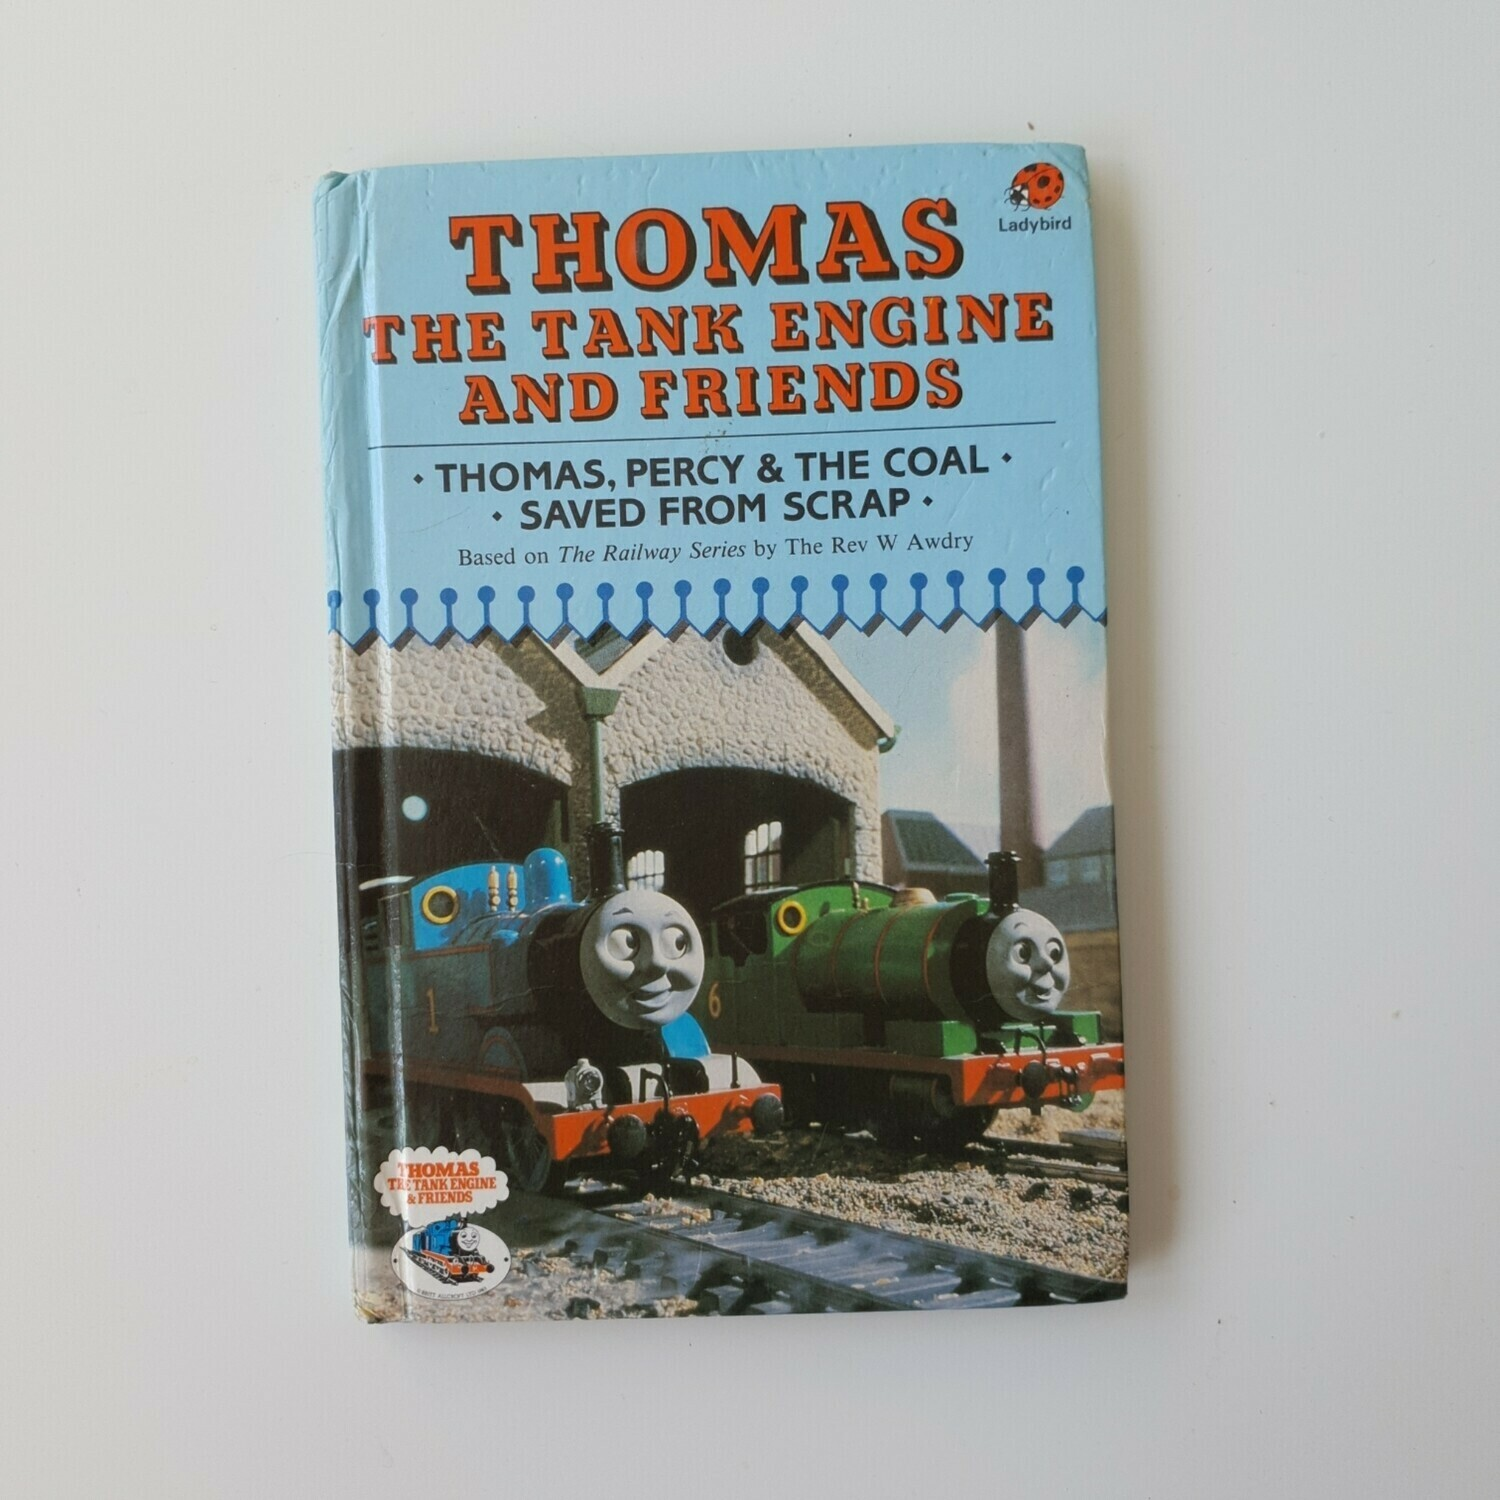 Thomas the Tank Engine - Choose from a selection of Vintage Ladybird Books